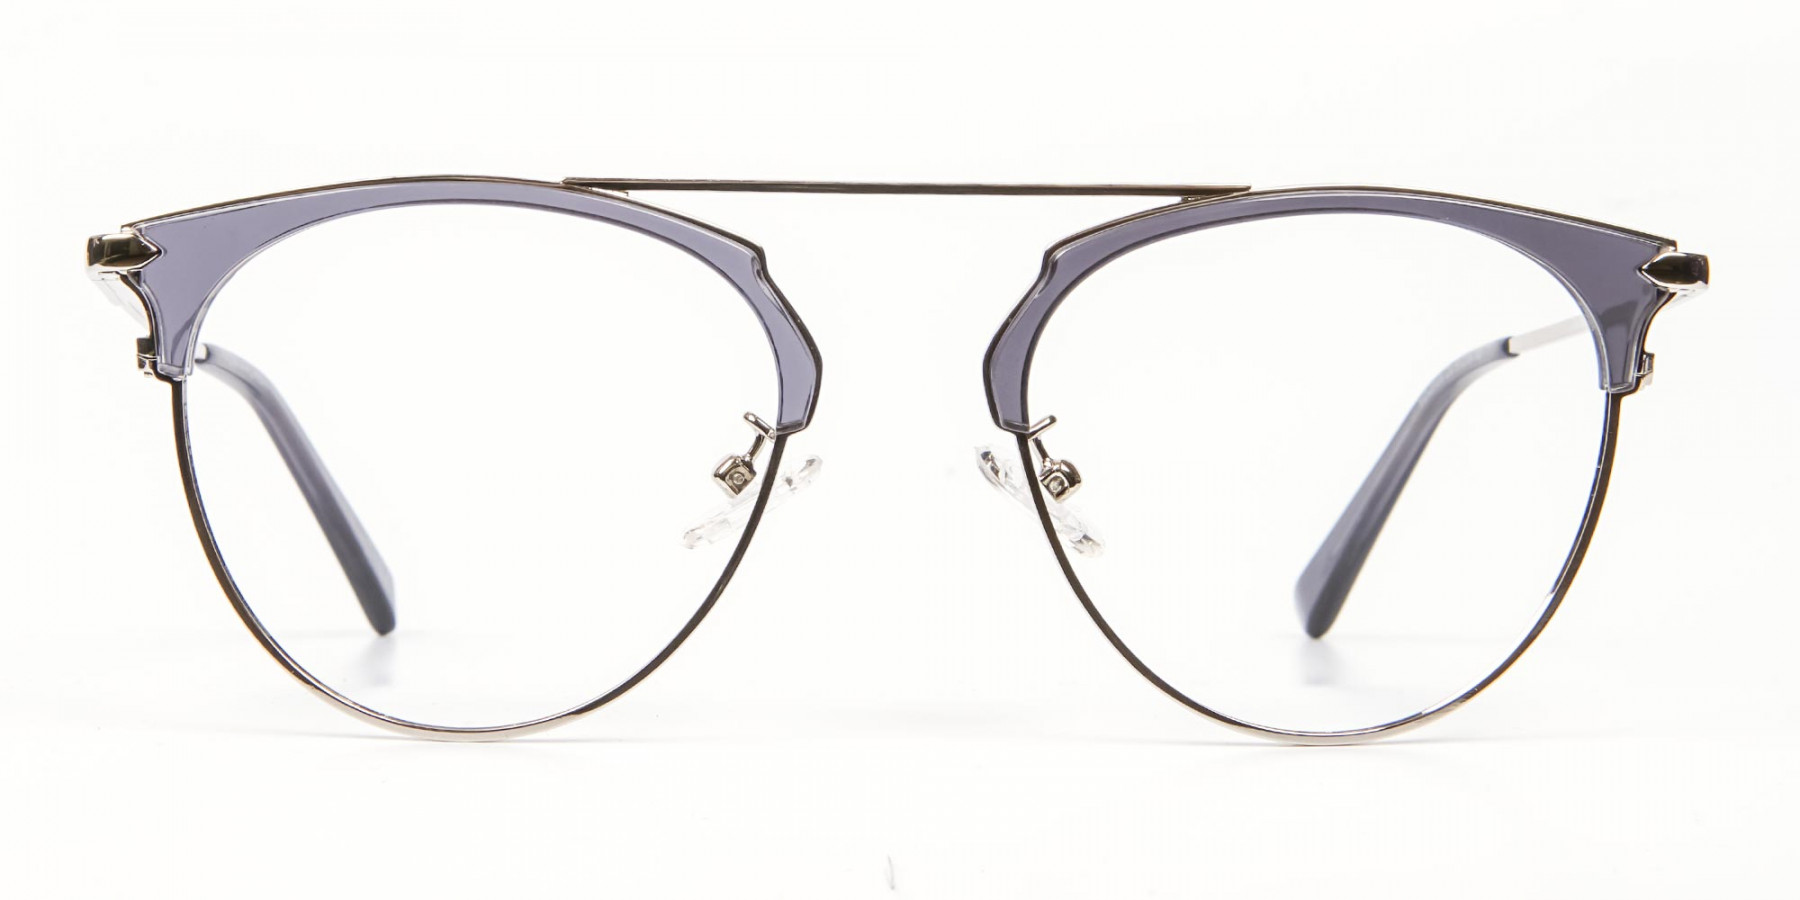 Translucent Browline Spring Hinge Glasses - 1